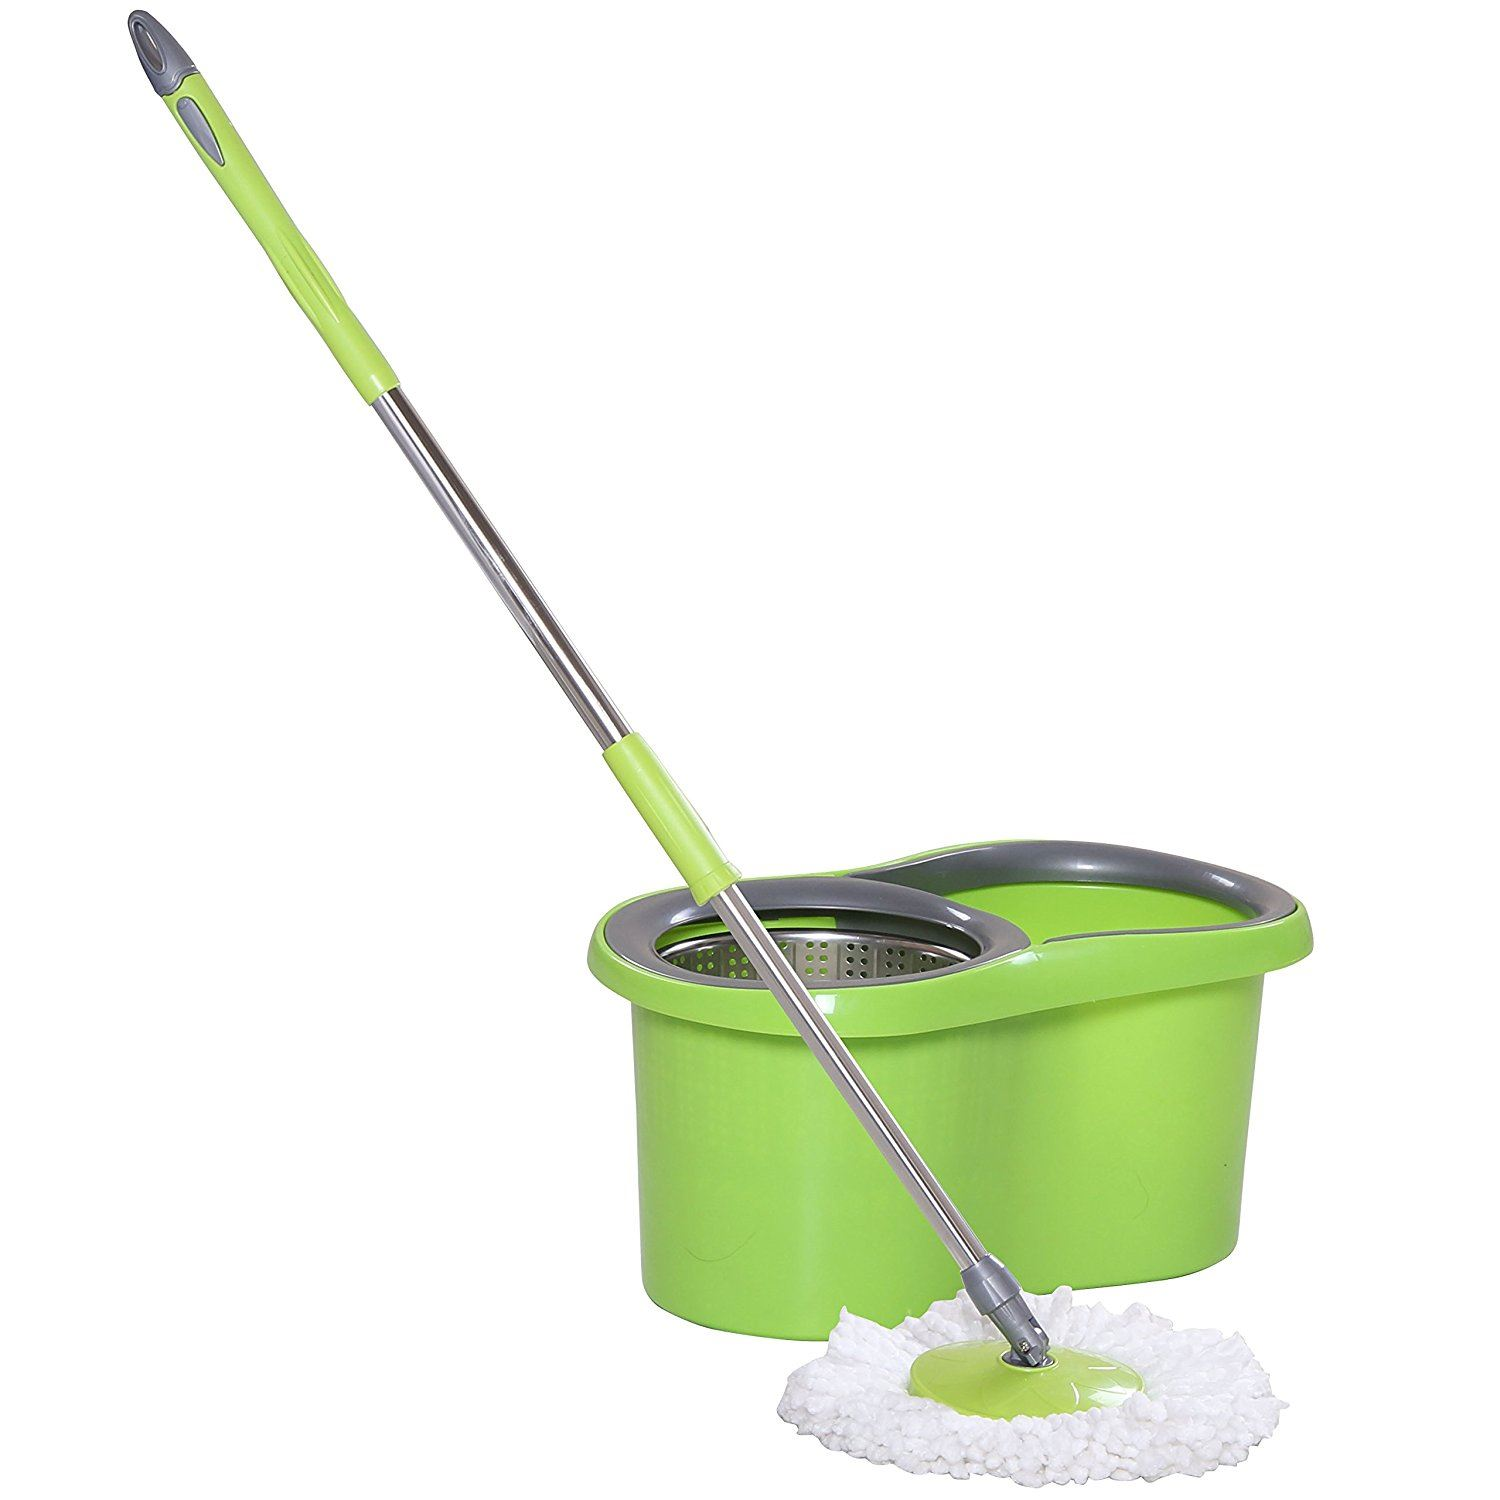 Stainless Steel Mop : ... Magic-Spin-15-Litre-Mop-Bucket-Stainless-Steel-Spinner-and-Microfiber